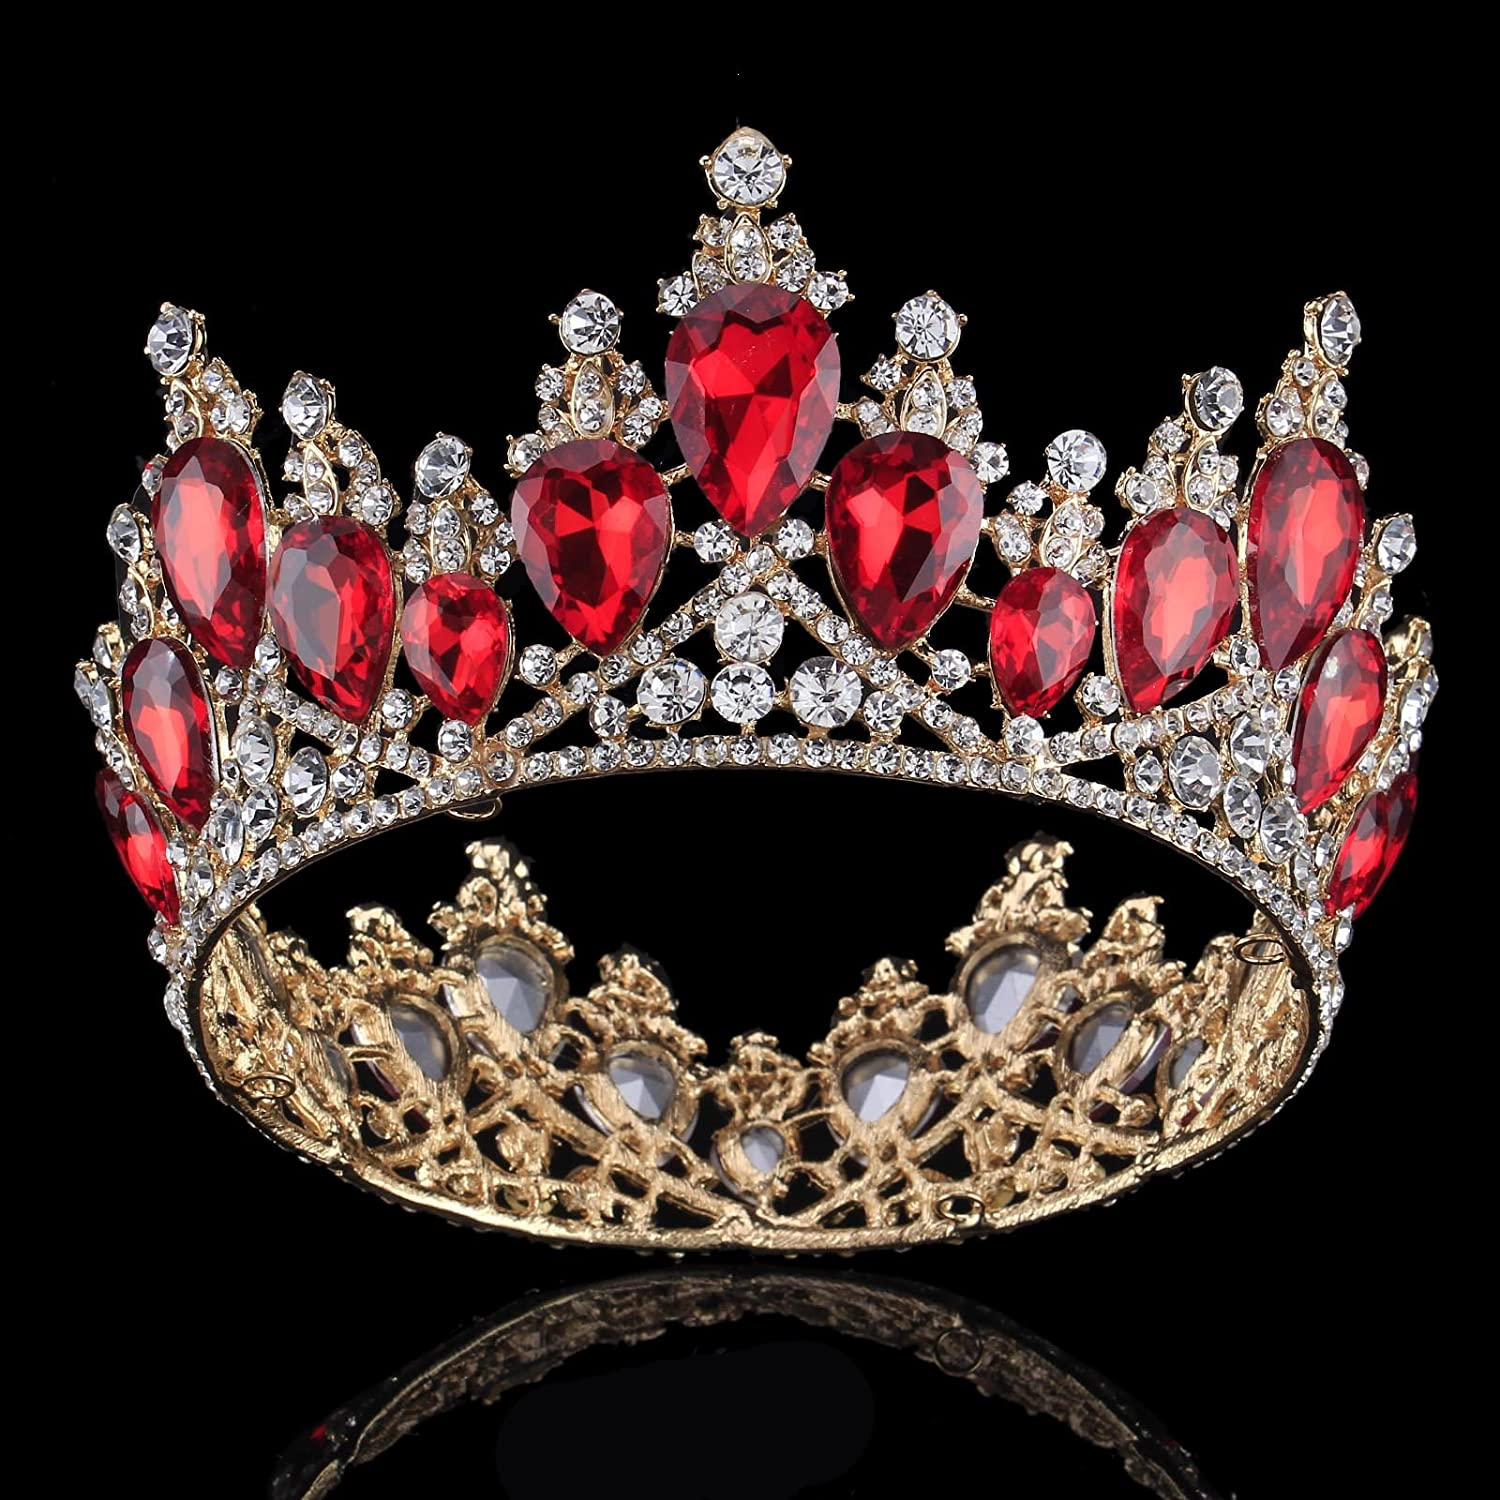 Amazon.com   Vintage Rhinestones Crystal Crown for Women Wedding Bridal  Tiara Flower Crown Hair Accessories (gold-red)   Beauty 91b091935b8e